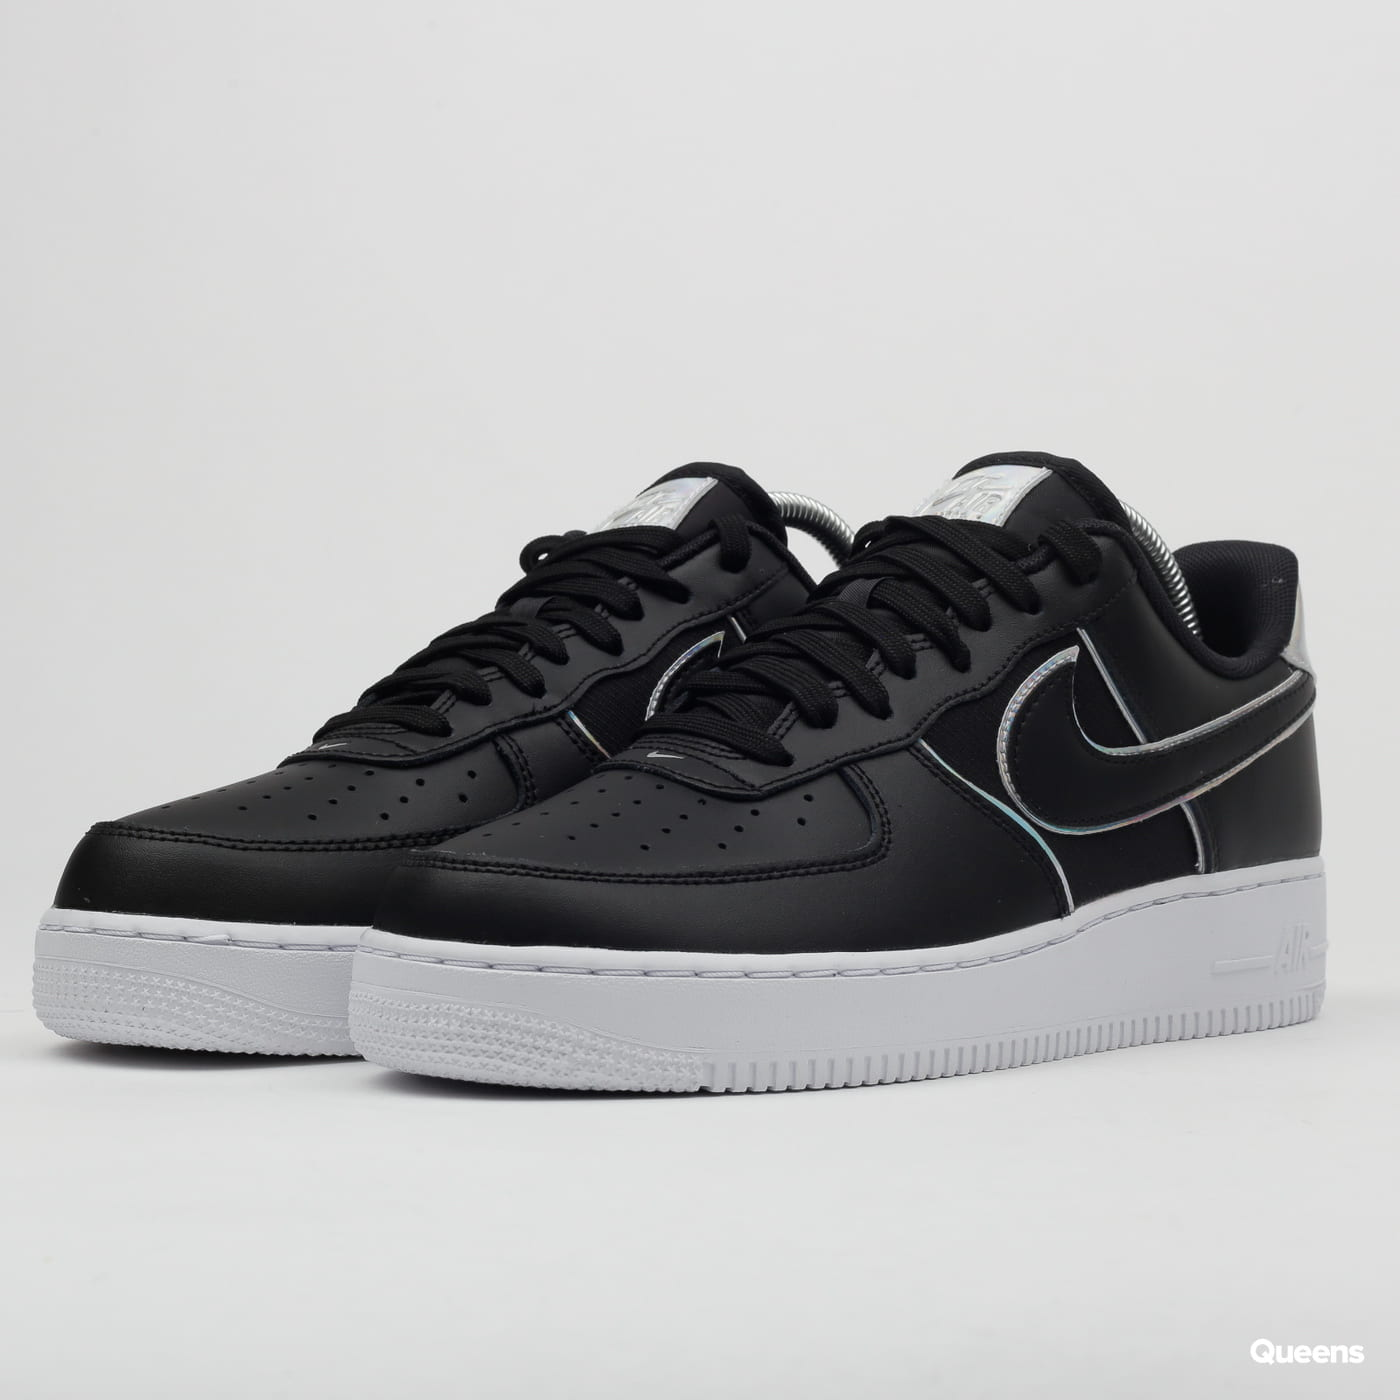 Black Force Nike Air 1 Lv8 4 '07 USVMzqp